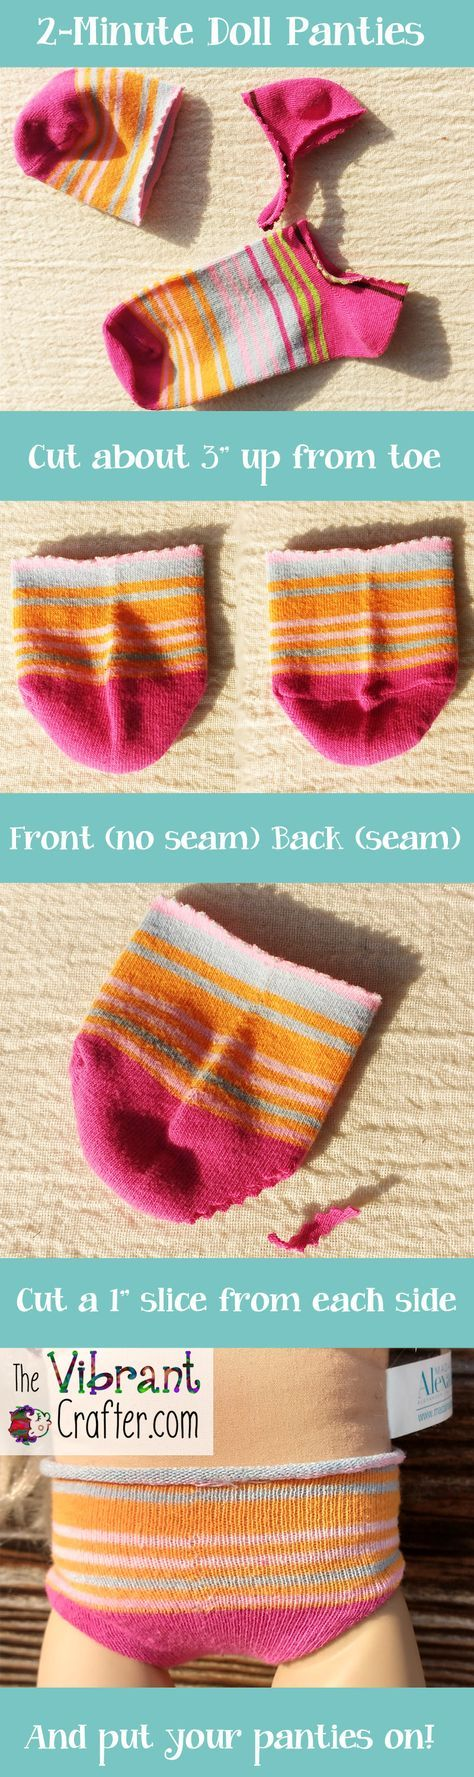 Easy Free Doll Panties Tutorial